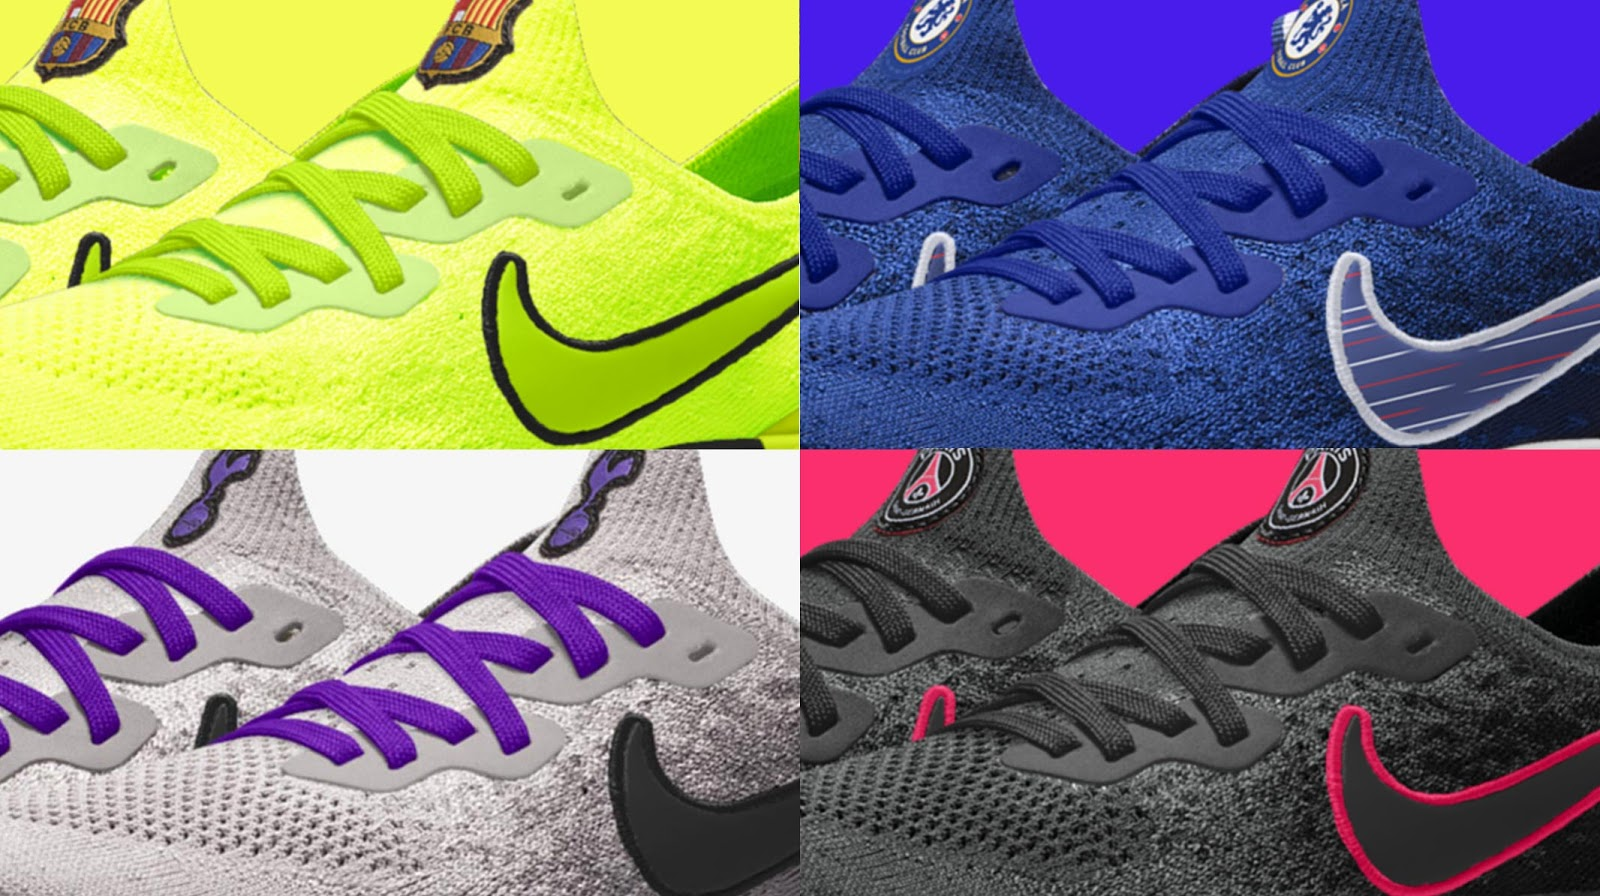 56ff7f8d4f469 Nike Epic React Club Editions Buy now. Official Nike online store -  shipping worldwide